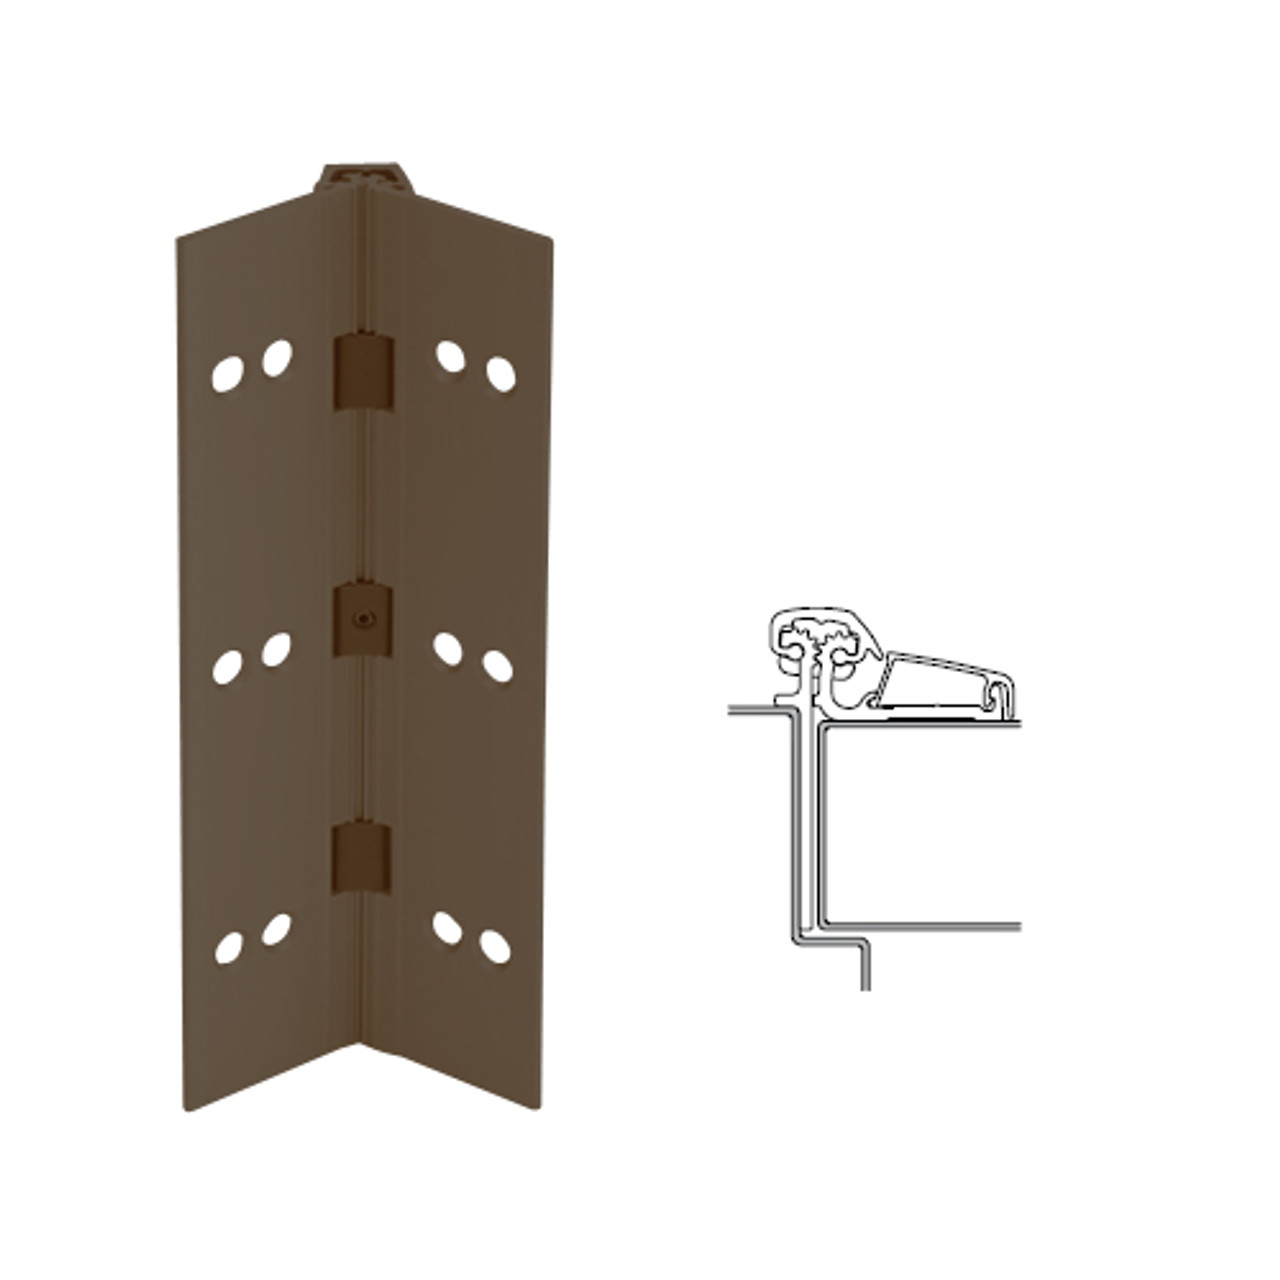 054XY-313AN-85-SECWDHM IVES Adjustable Half Surface Continuous Geared Hinges with Security Screws - Hex Pin Drive in Dark Bronze Anodized